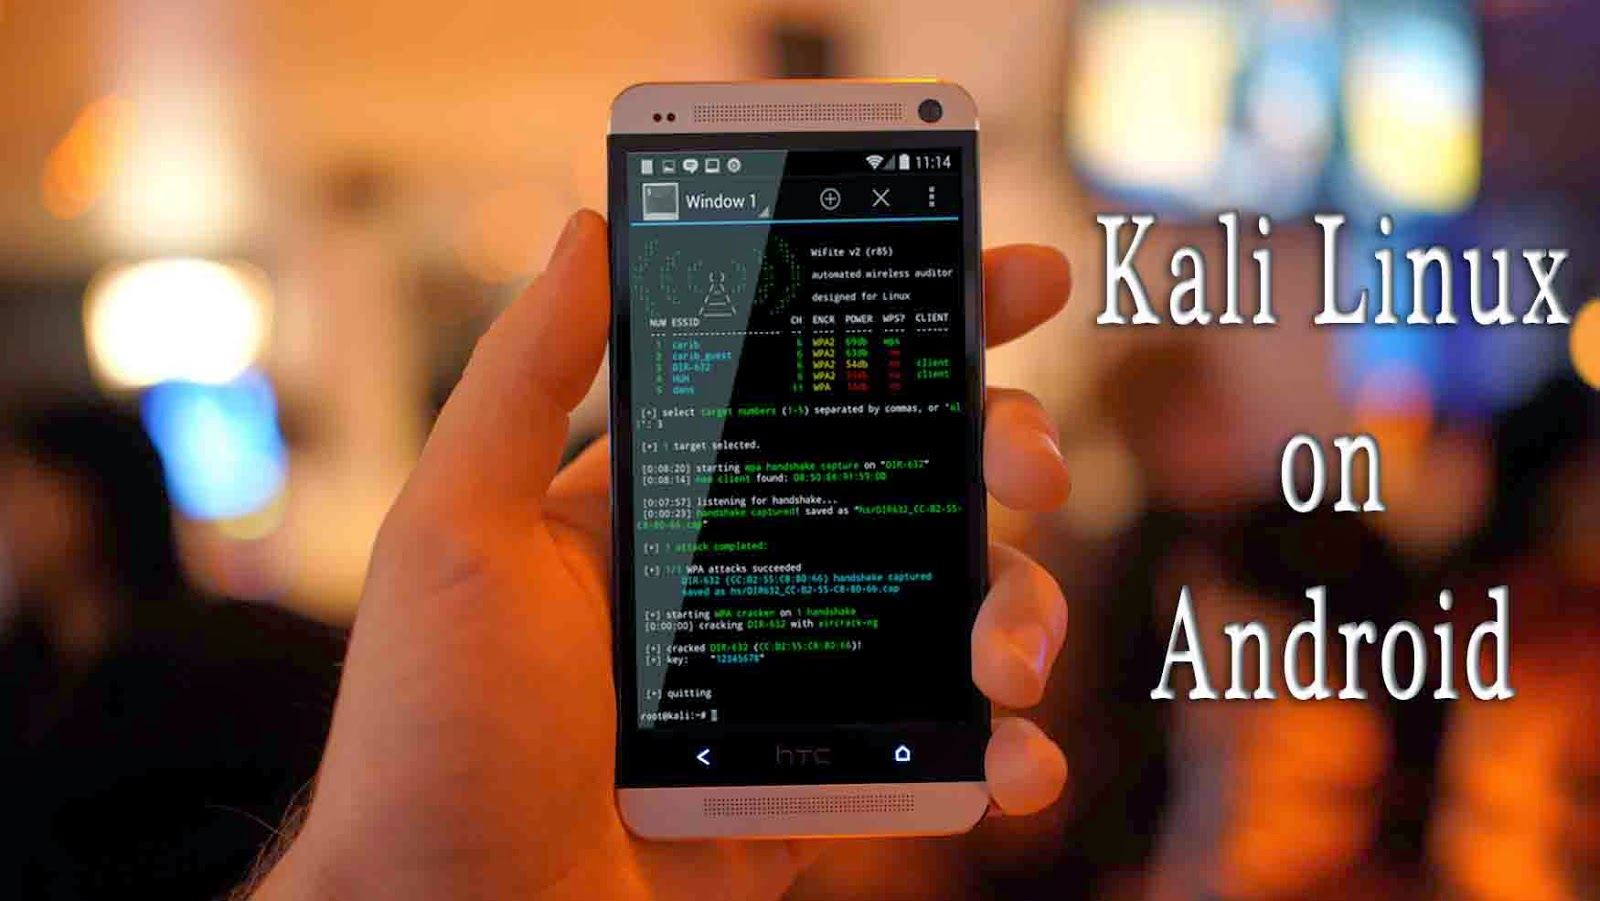 Hack Android phone remotely using Kali Linux  - Thapanoid